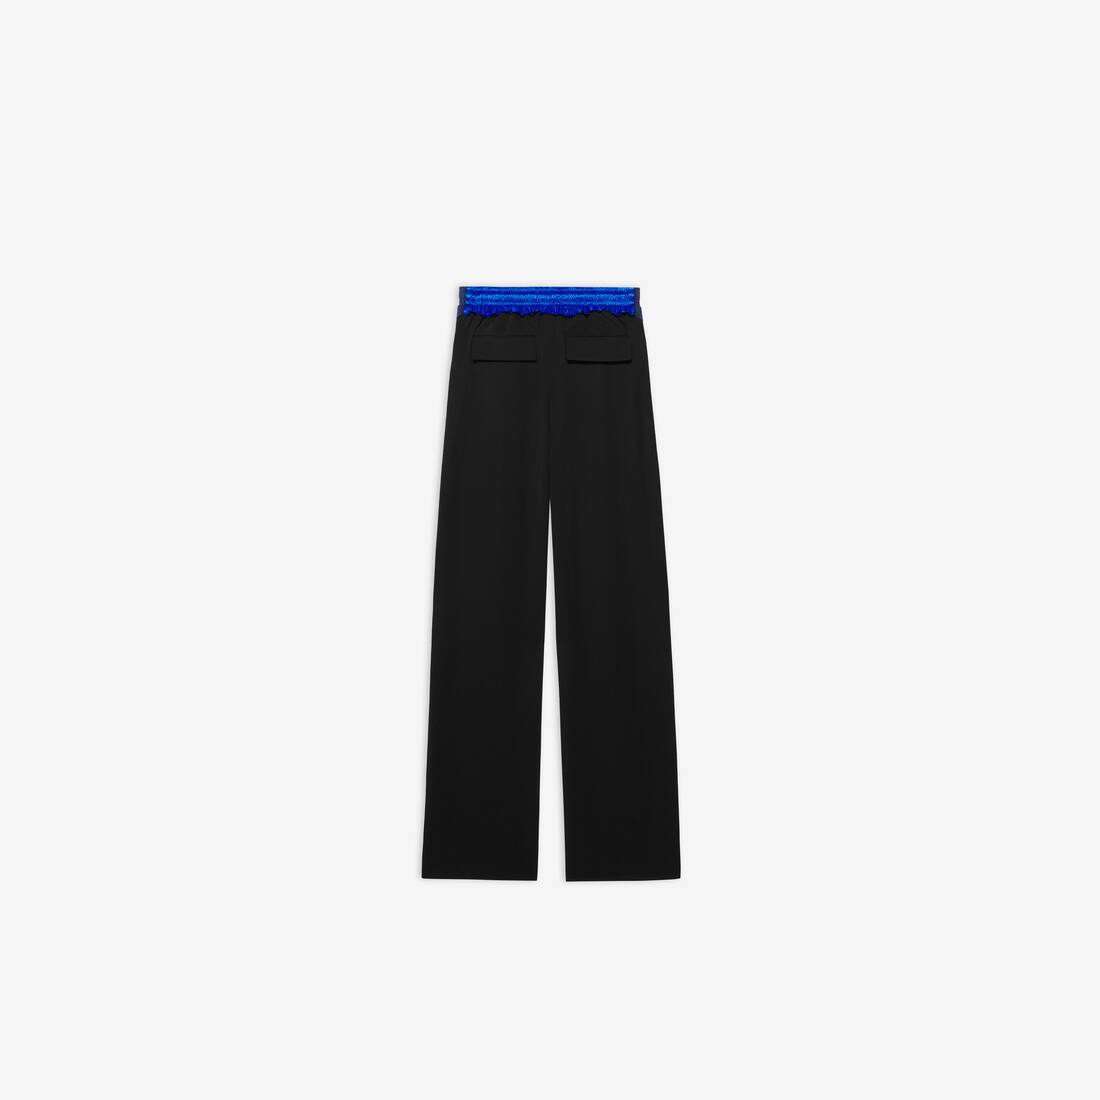 Display zoomed version of tailored jogger pants 2